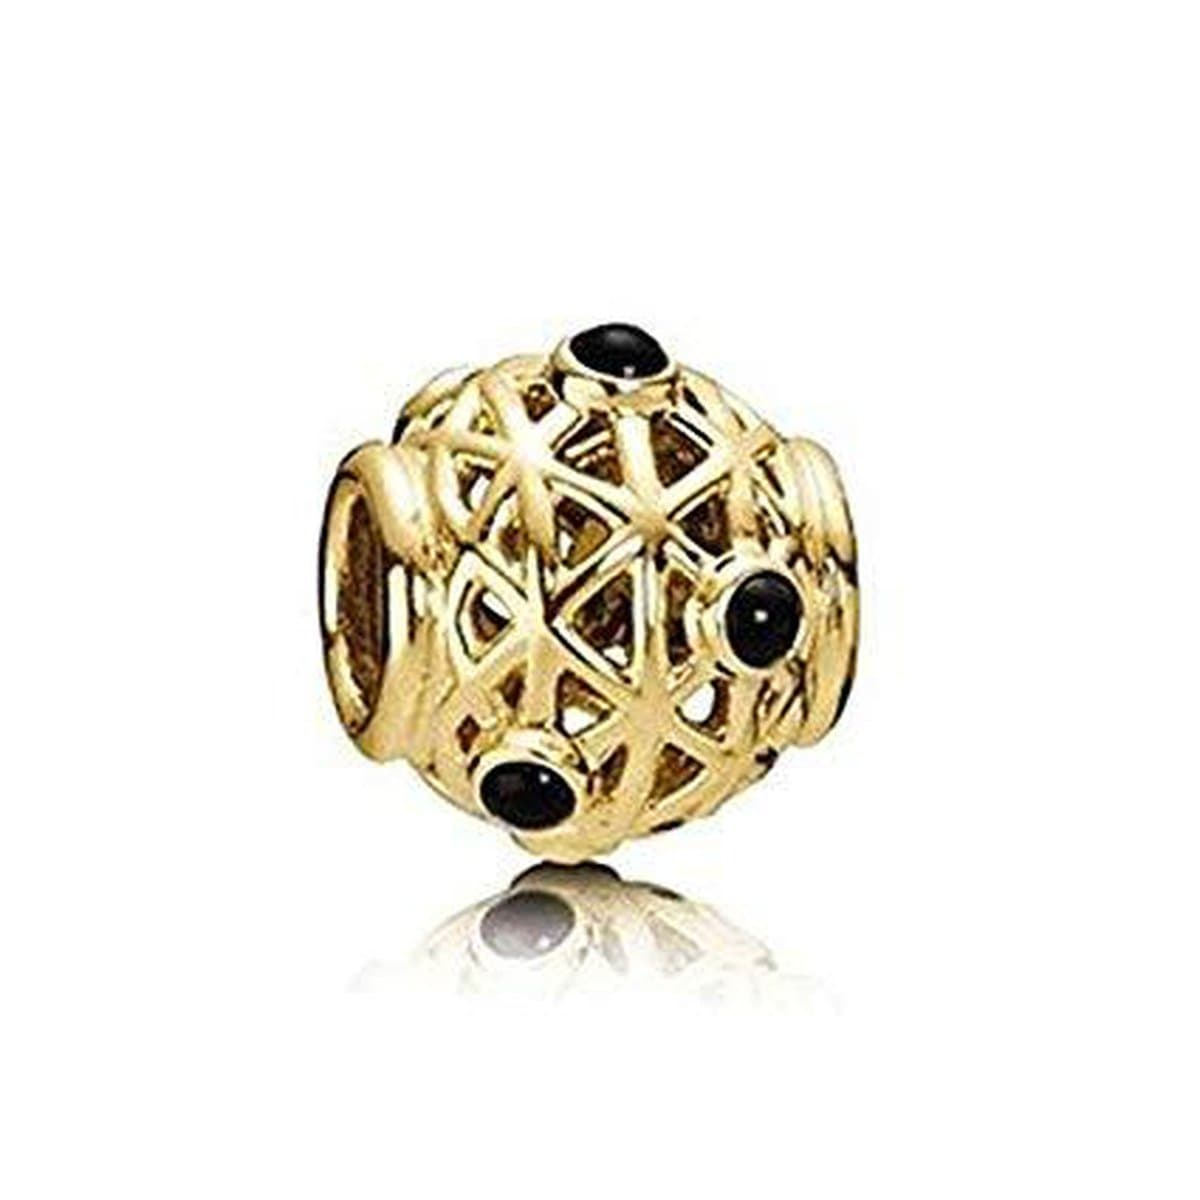 Constellation 14K Gold Onyx Charm - 750508ON-Pandora-Renee Taylor Gallery